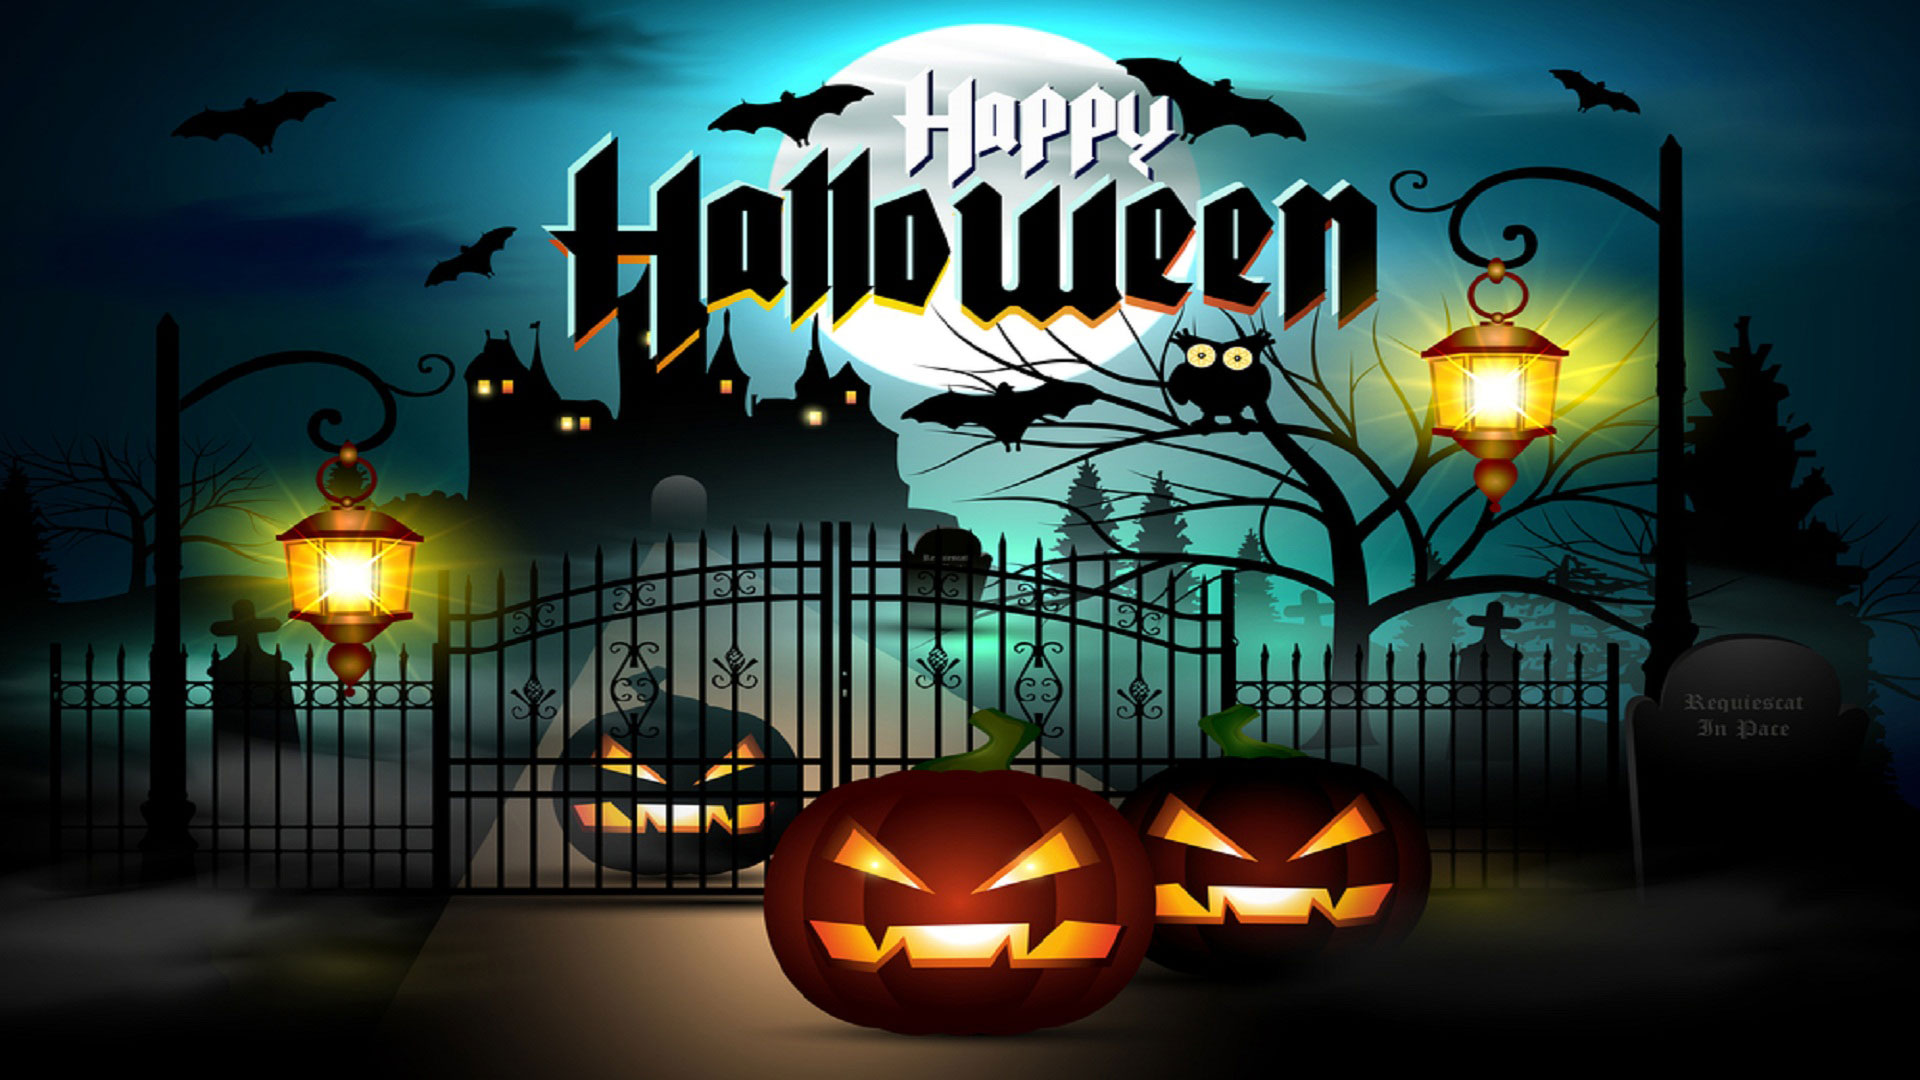 Happy Halloween Images HD